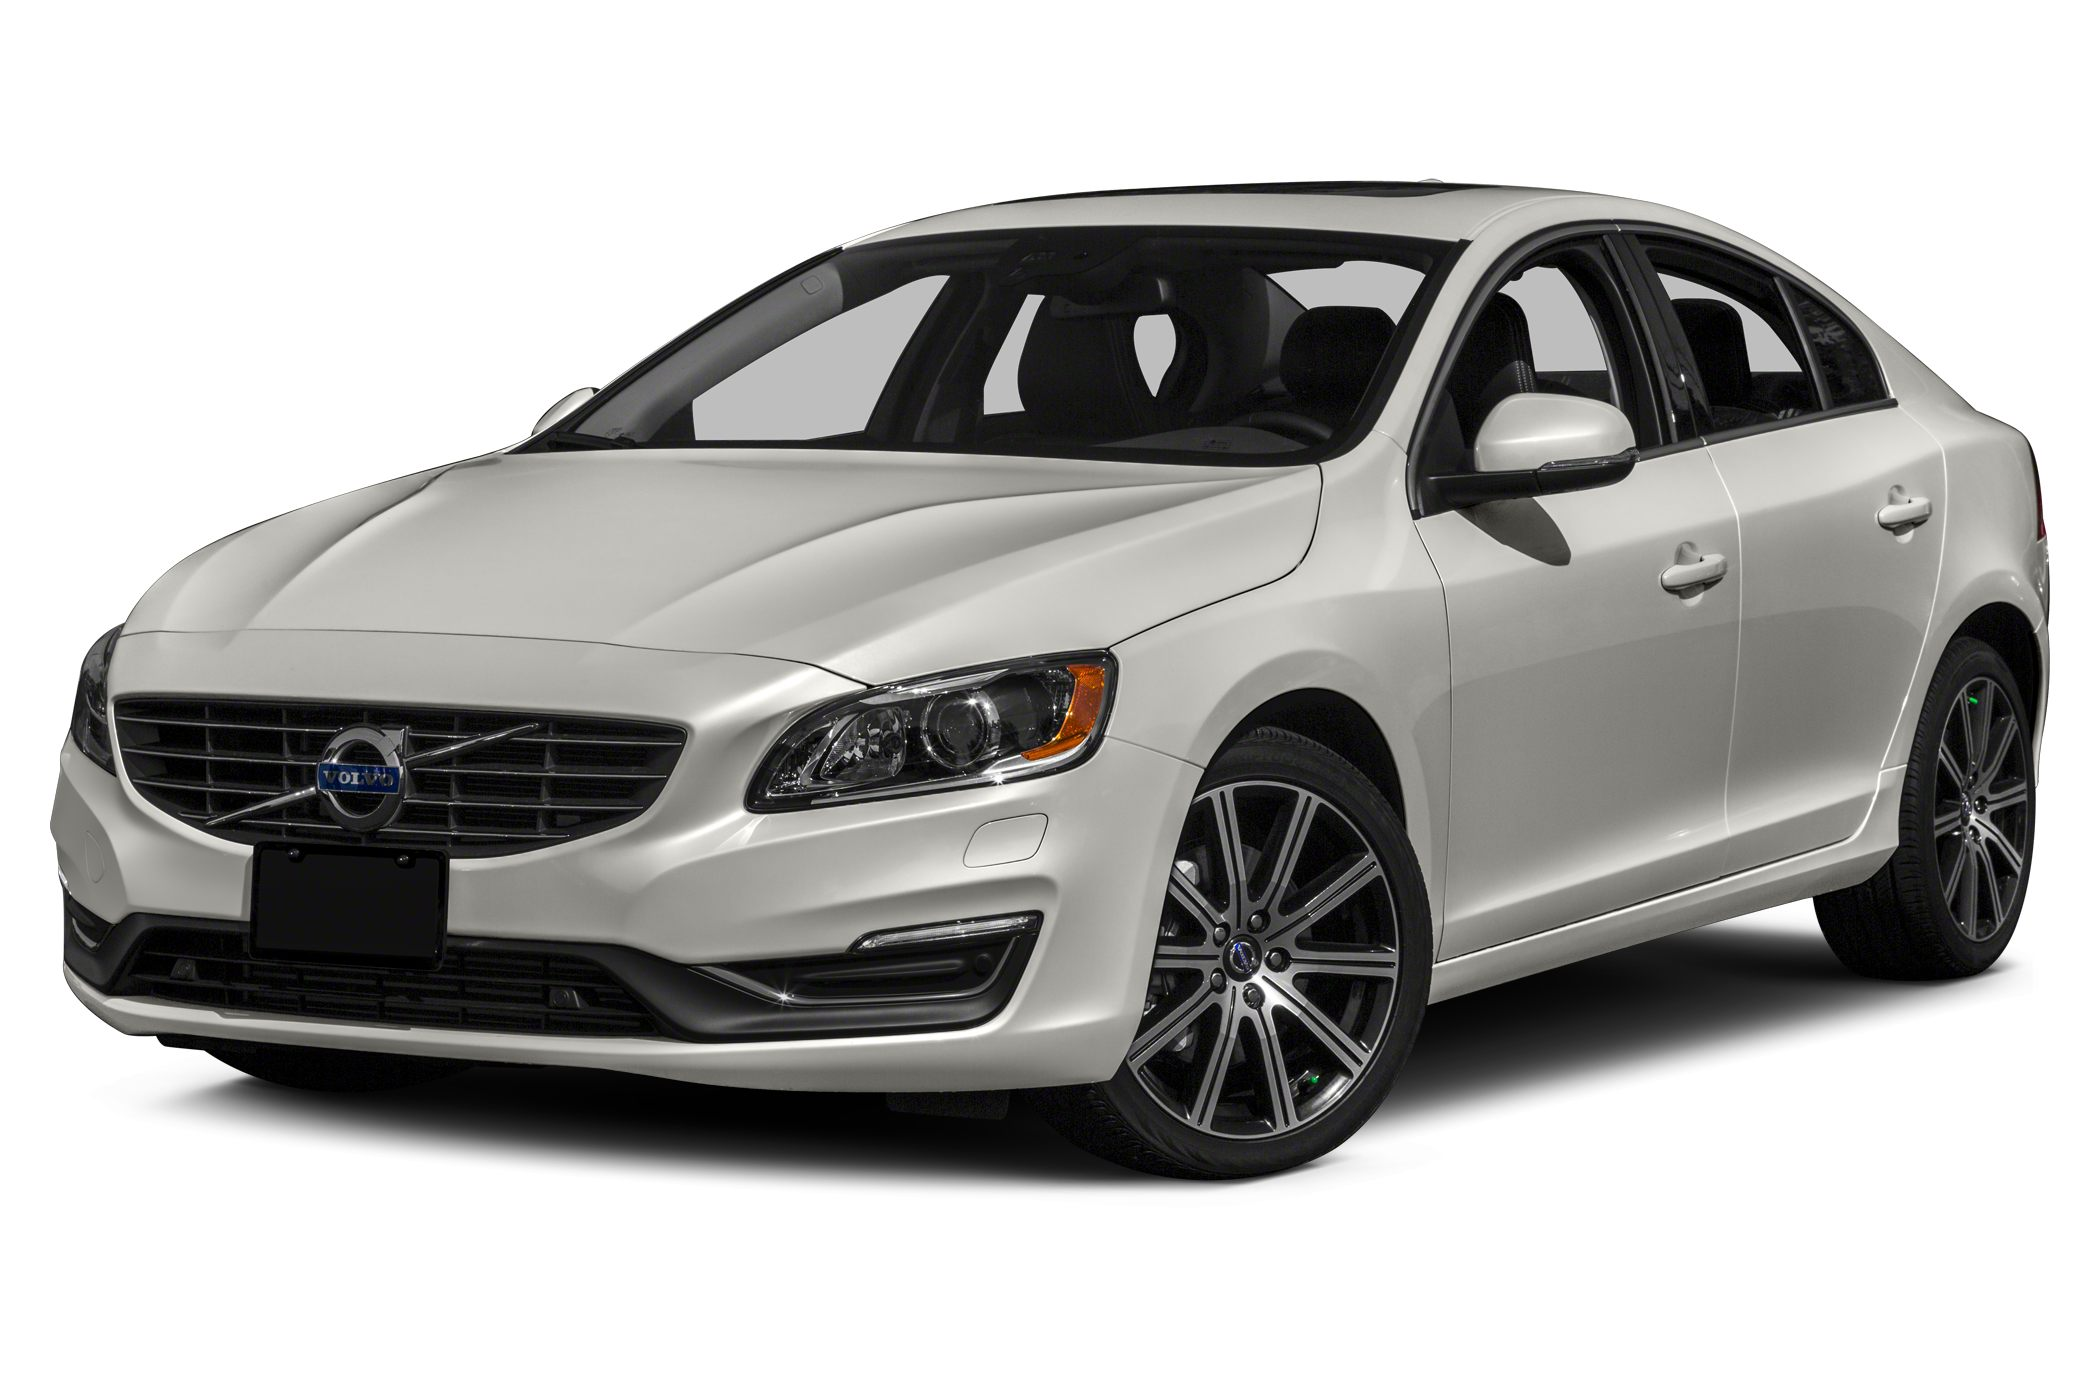 new models volvo push to cars autocar lead small car news